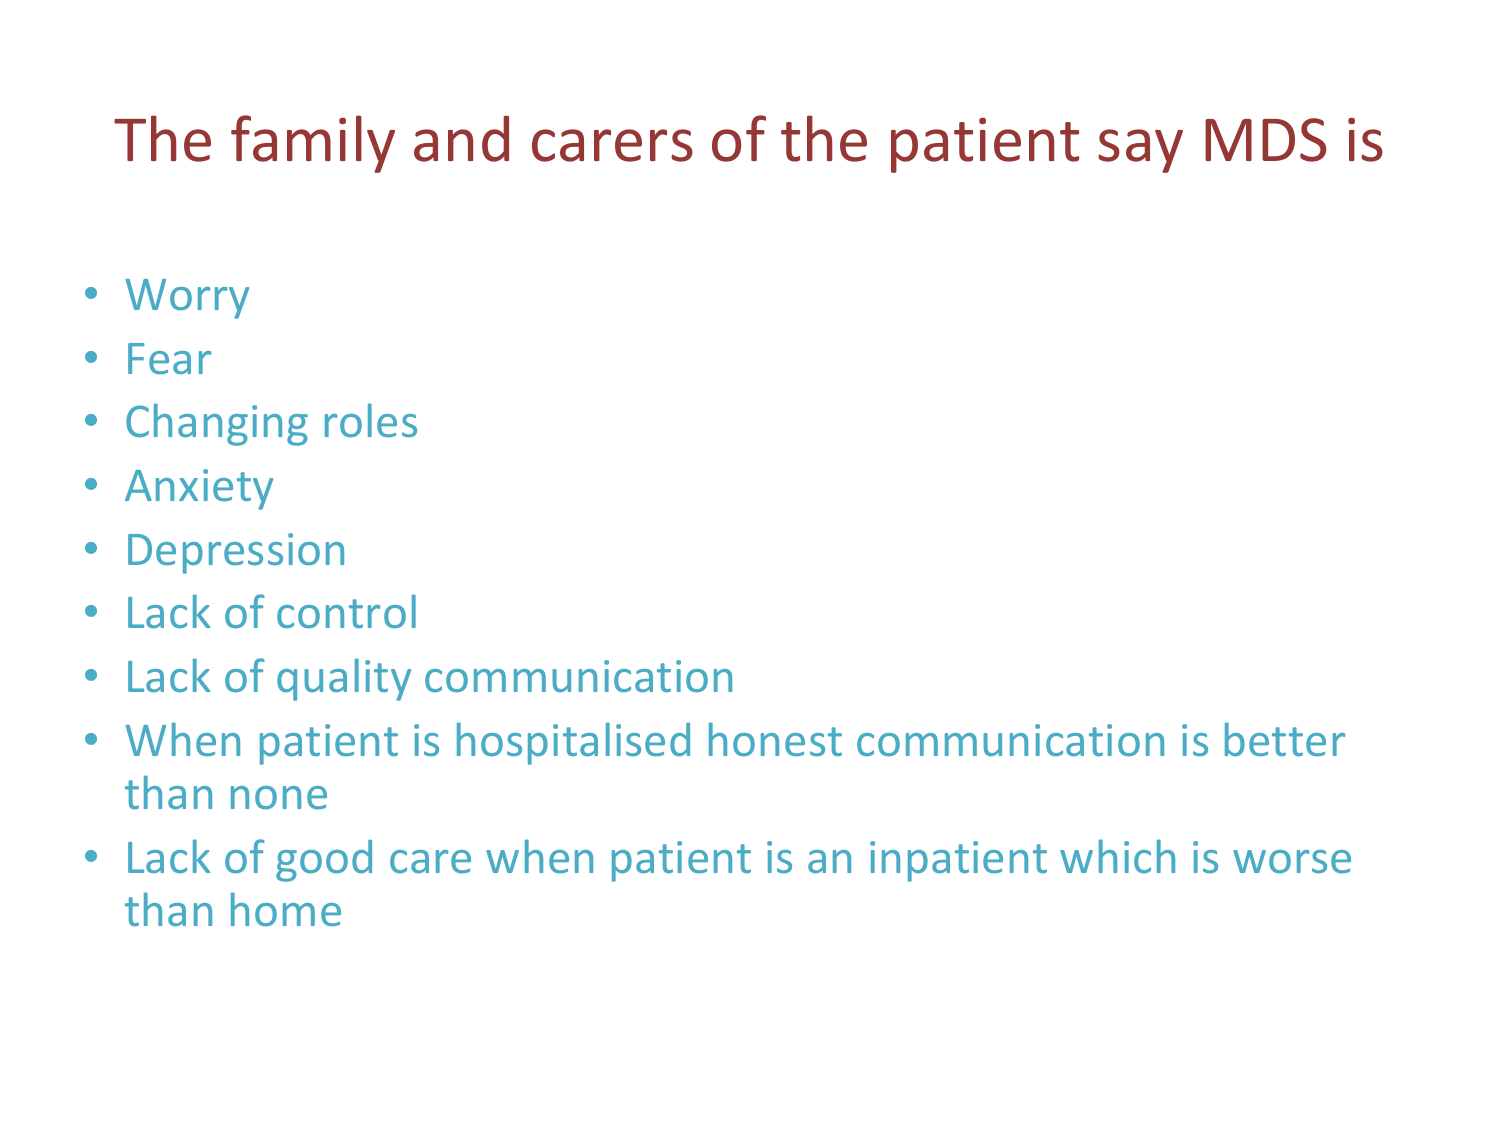 uk-mds-forum-slides-2014-slide-10.png